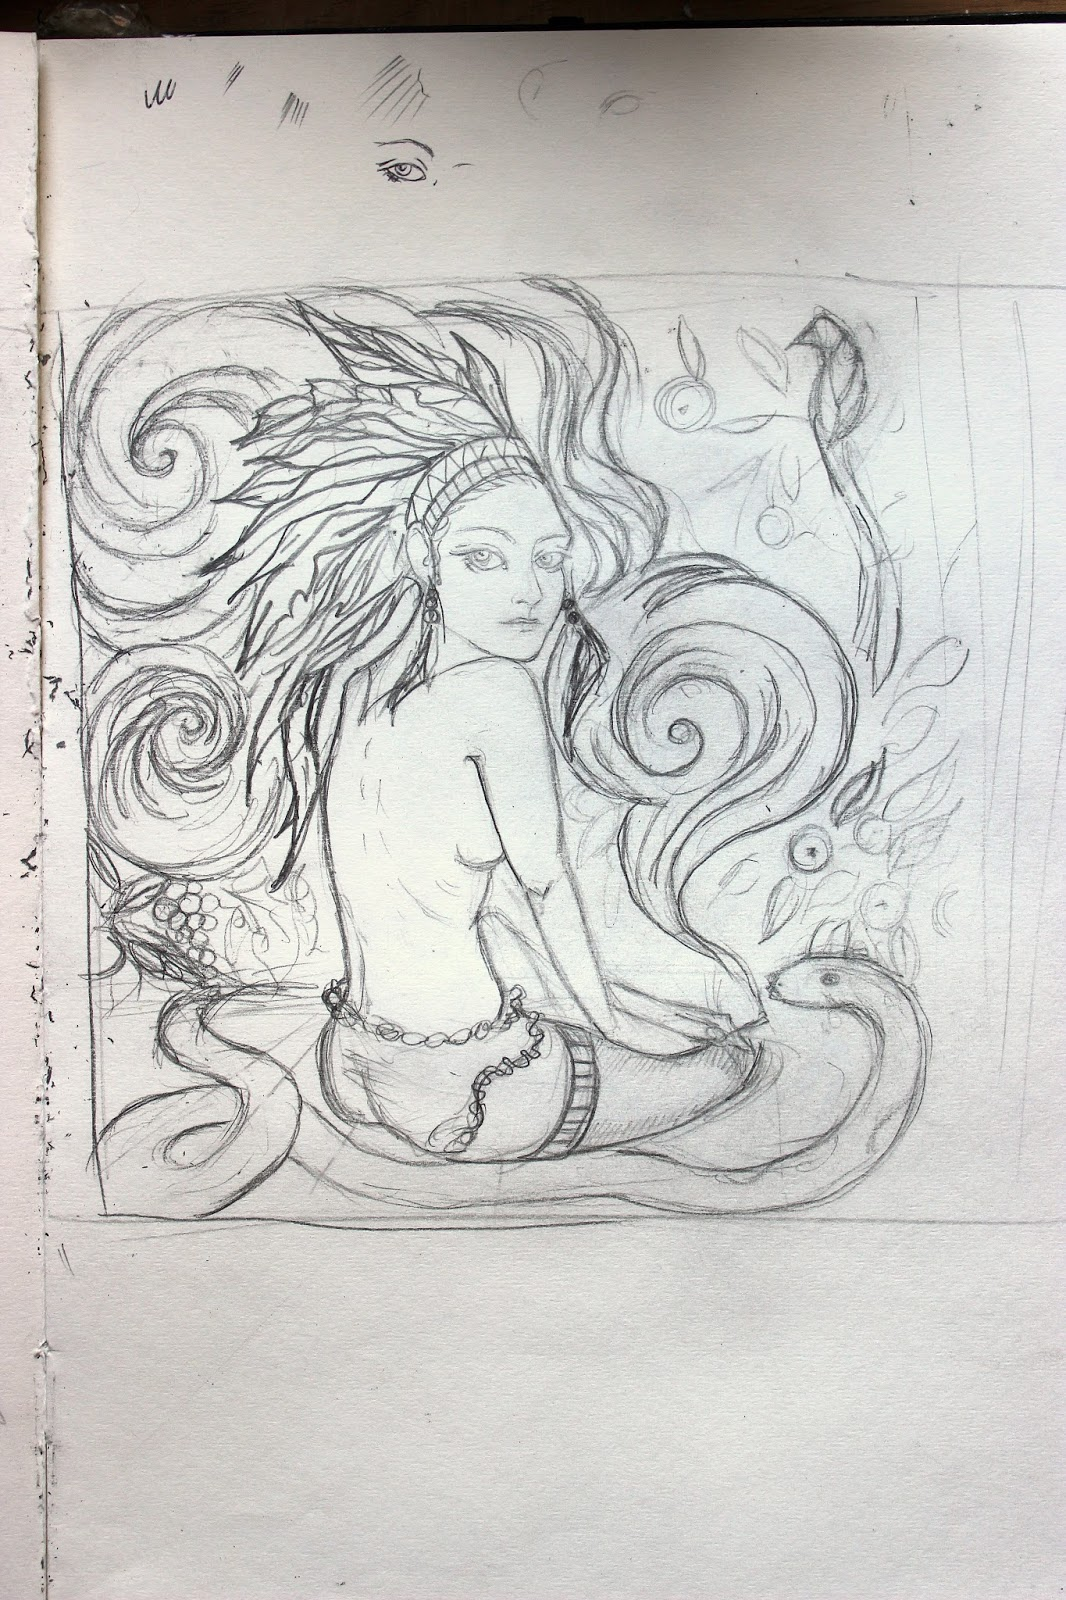 Drawing Sketch Illustration Pencil Sketchpad Notebook Smoking Nude Indian